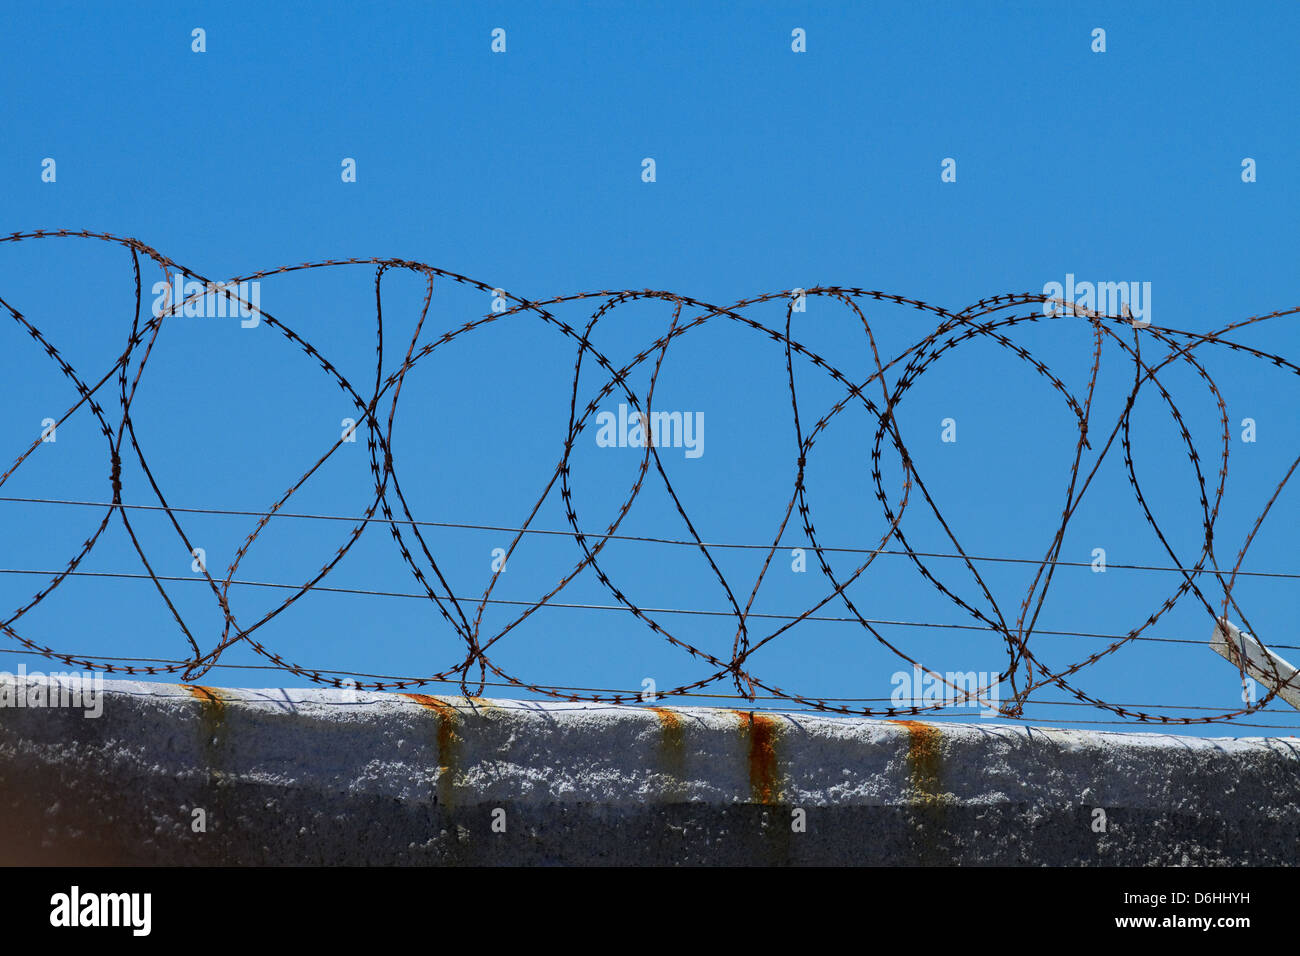 Barbed wire fence, Robben Island, Table Bay, Cape Town, South Africa Stock Photo